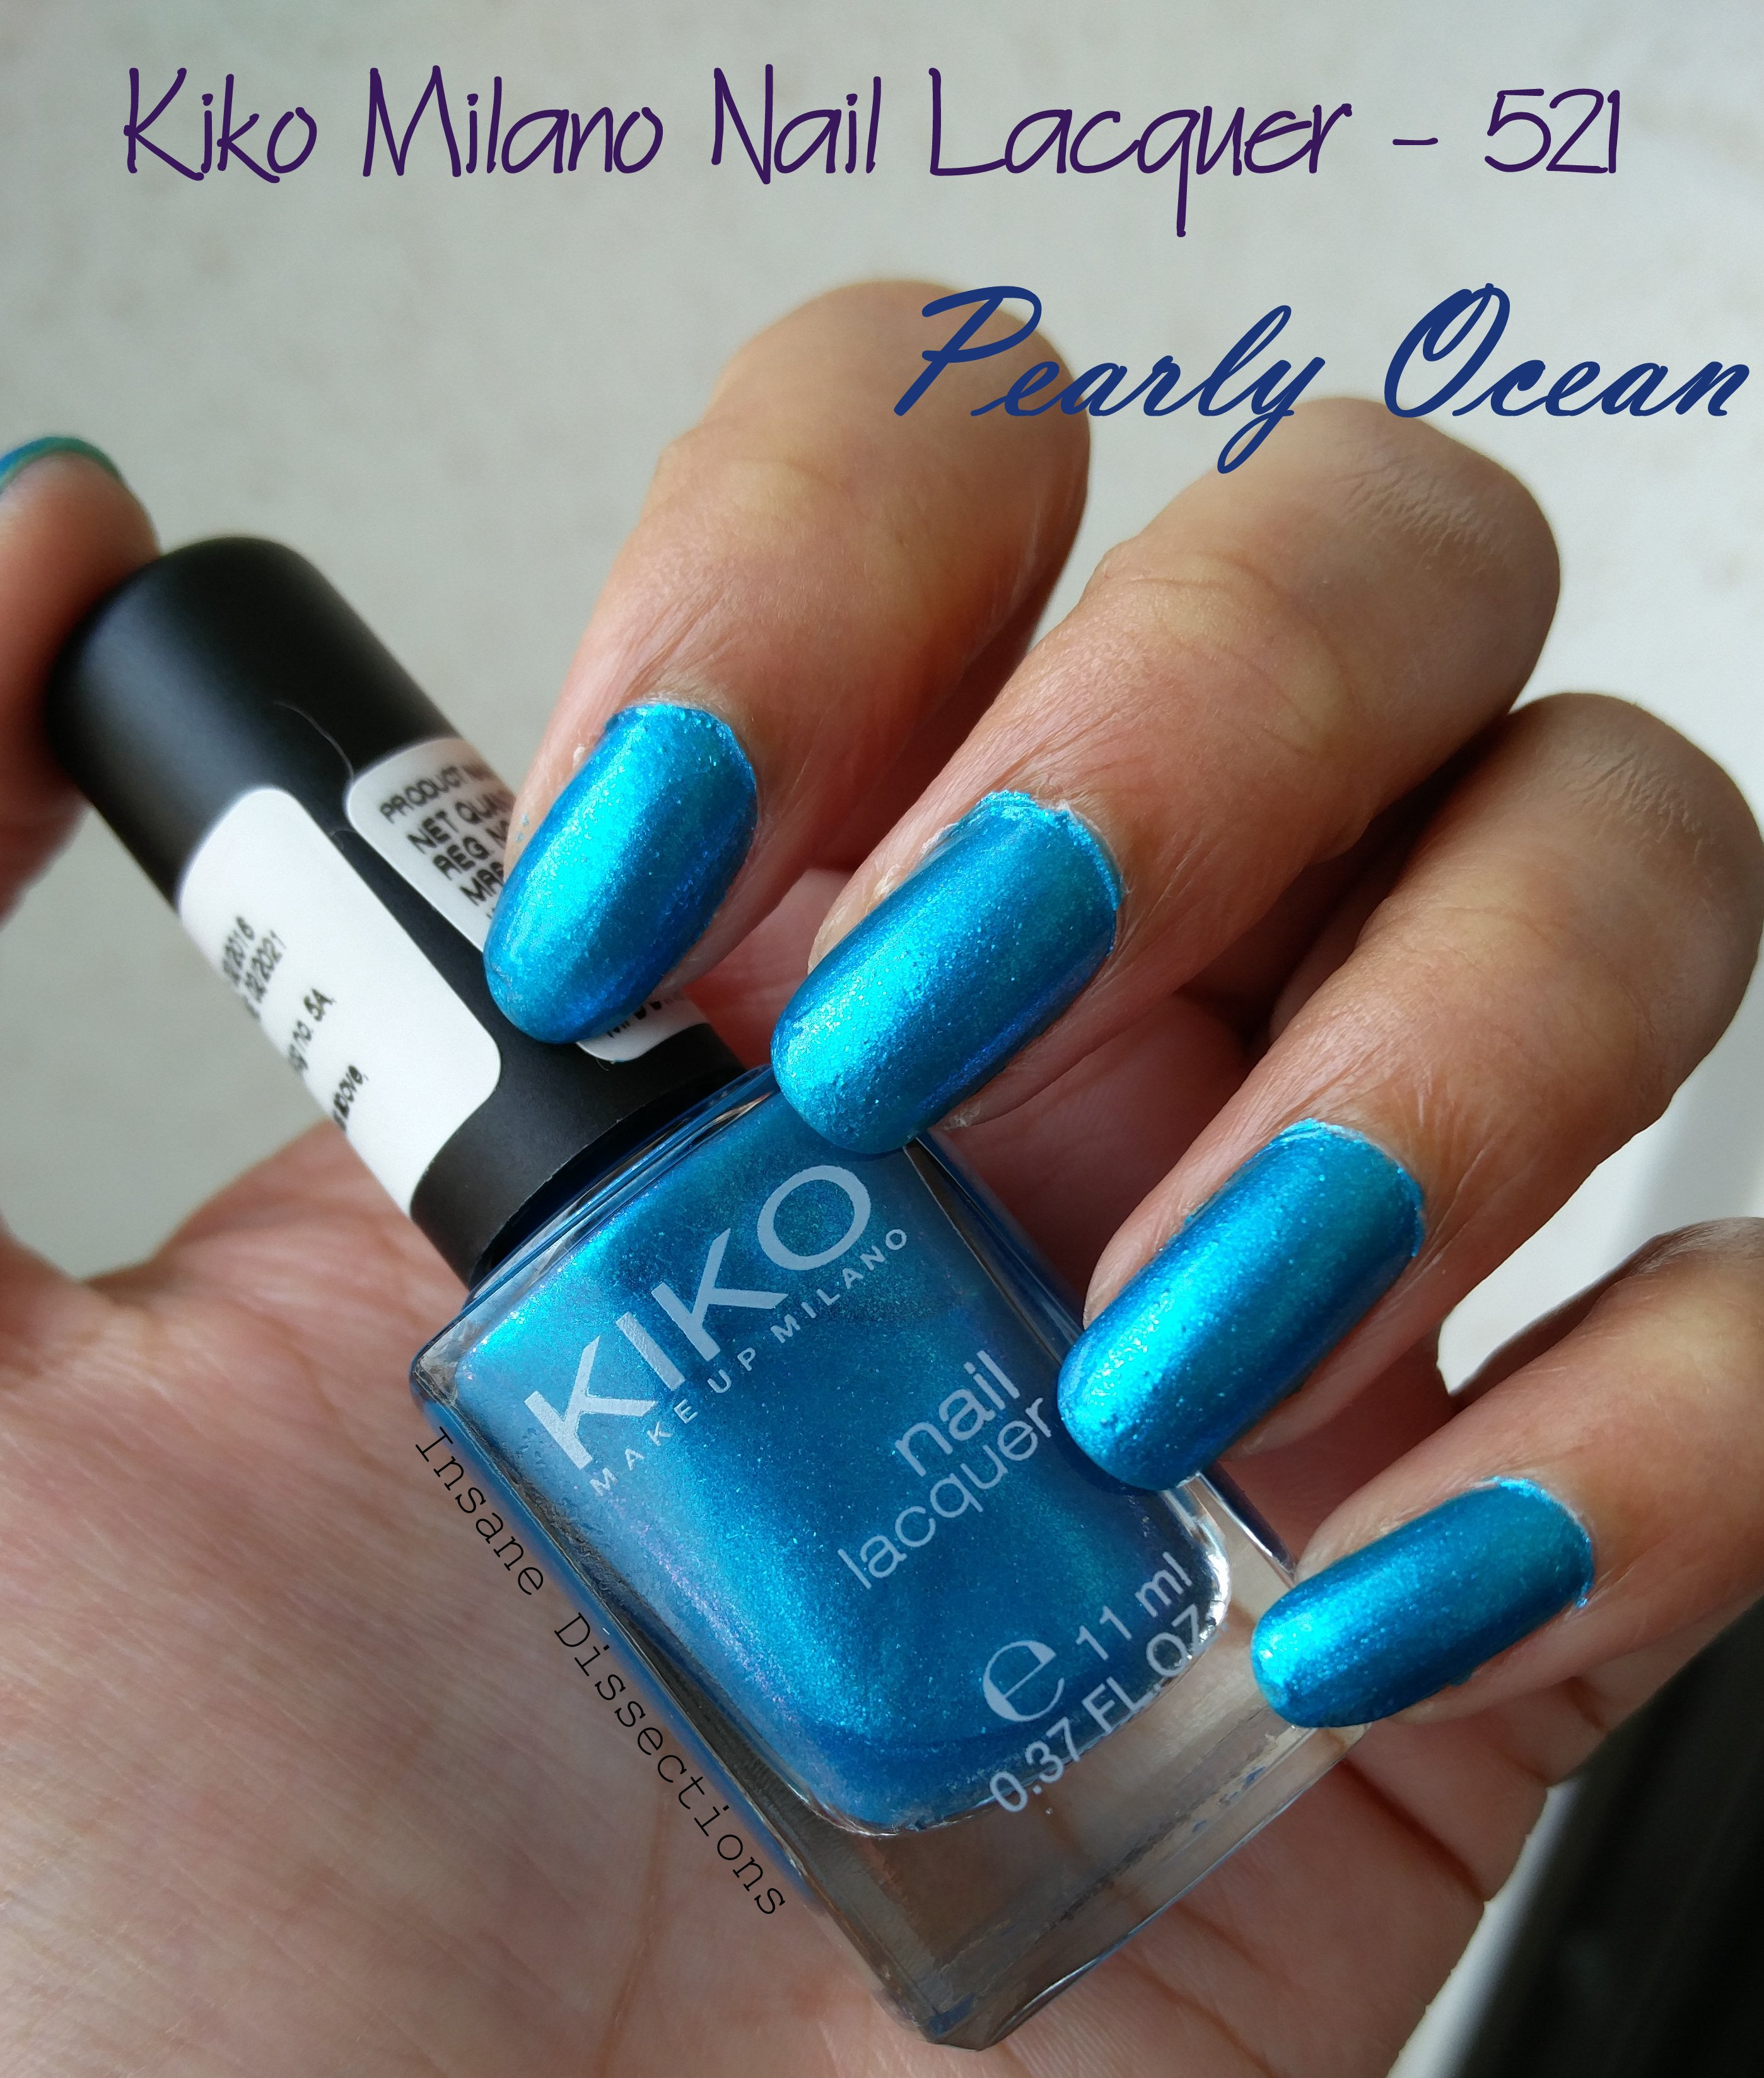 521 Pearly Ocean: Review & Swatch